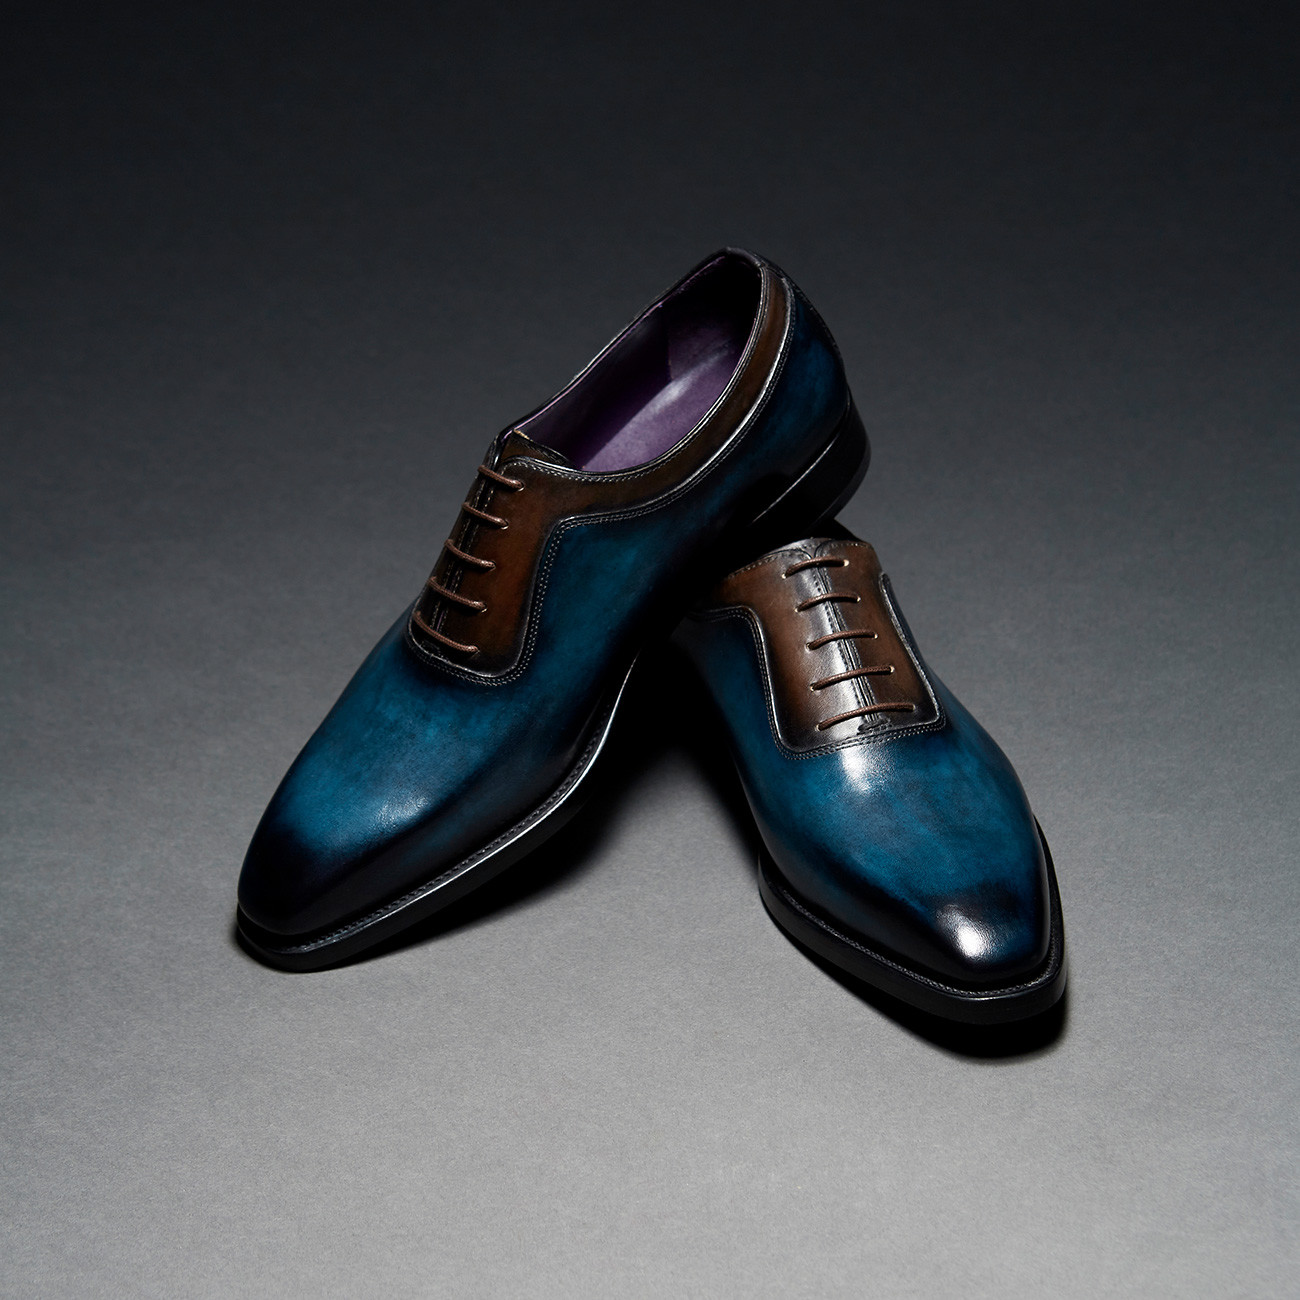 [Custommania X The shuri] PATINA PLAIN TOE OXFORD OFR No.565